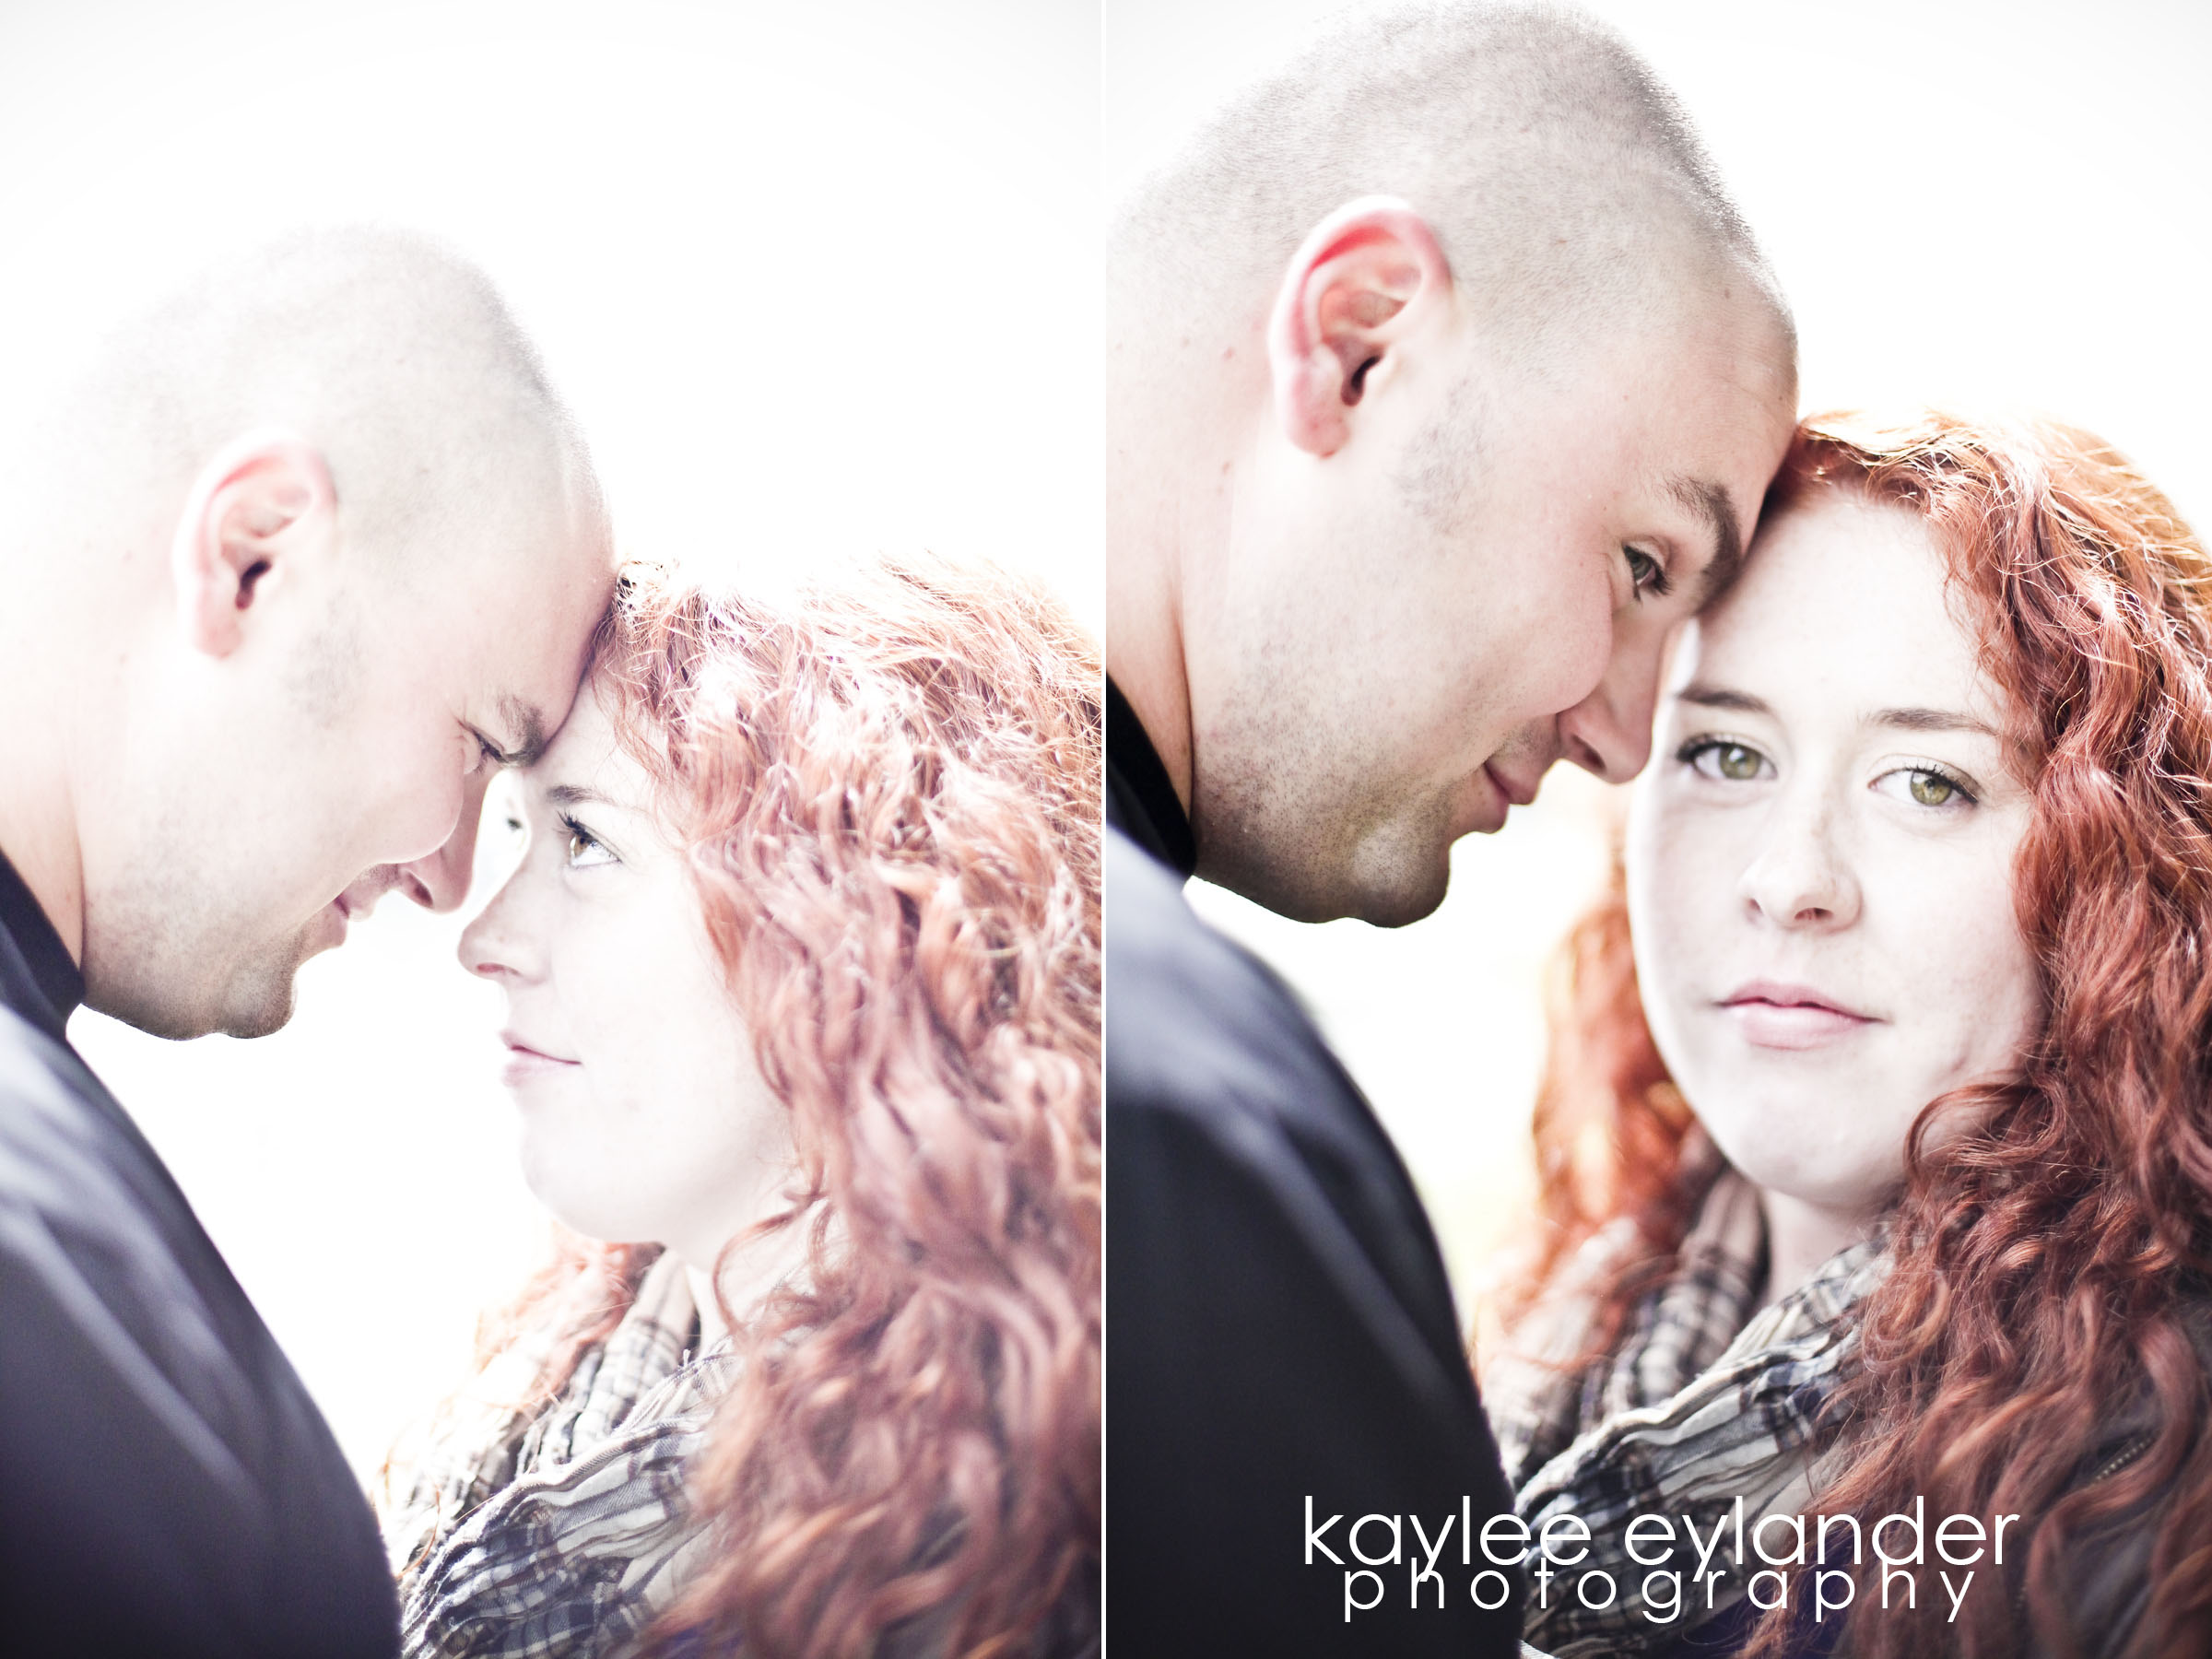 Meghann Rick 17 In The Trees| Engagement Session in the Forest | Eylander